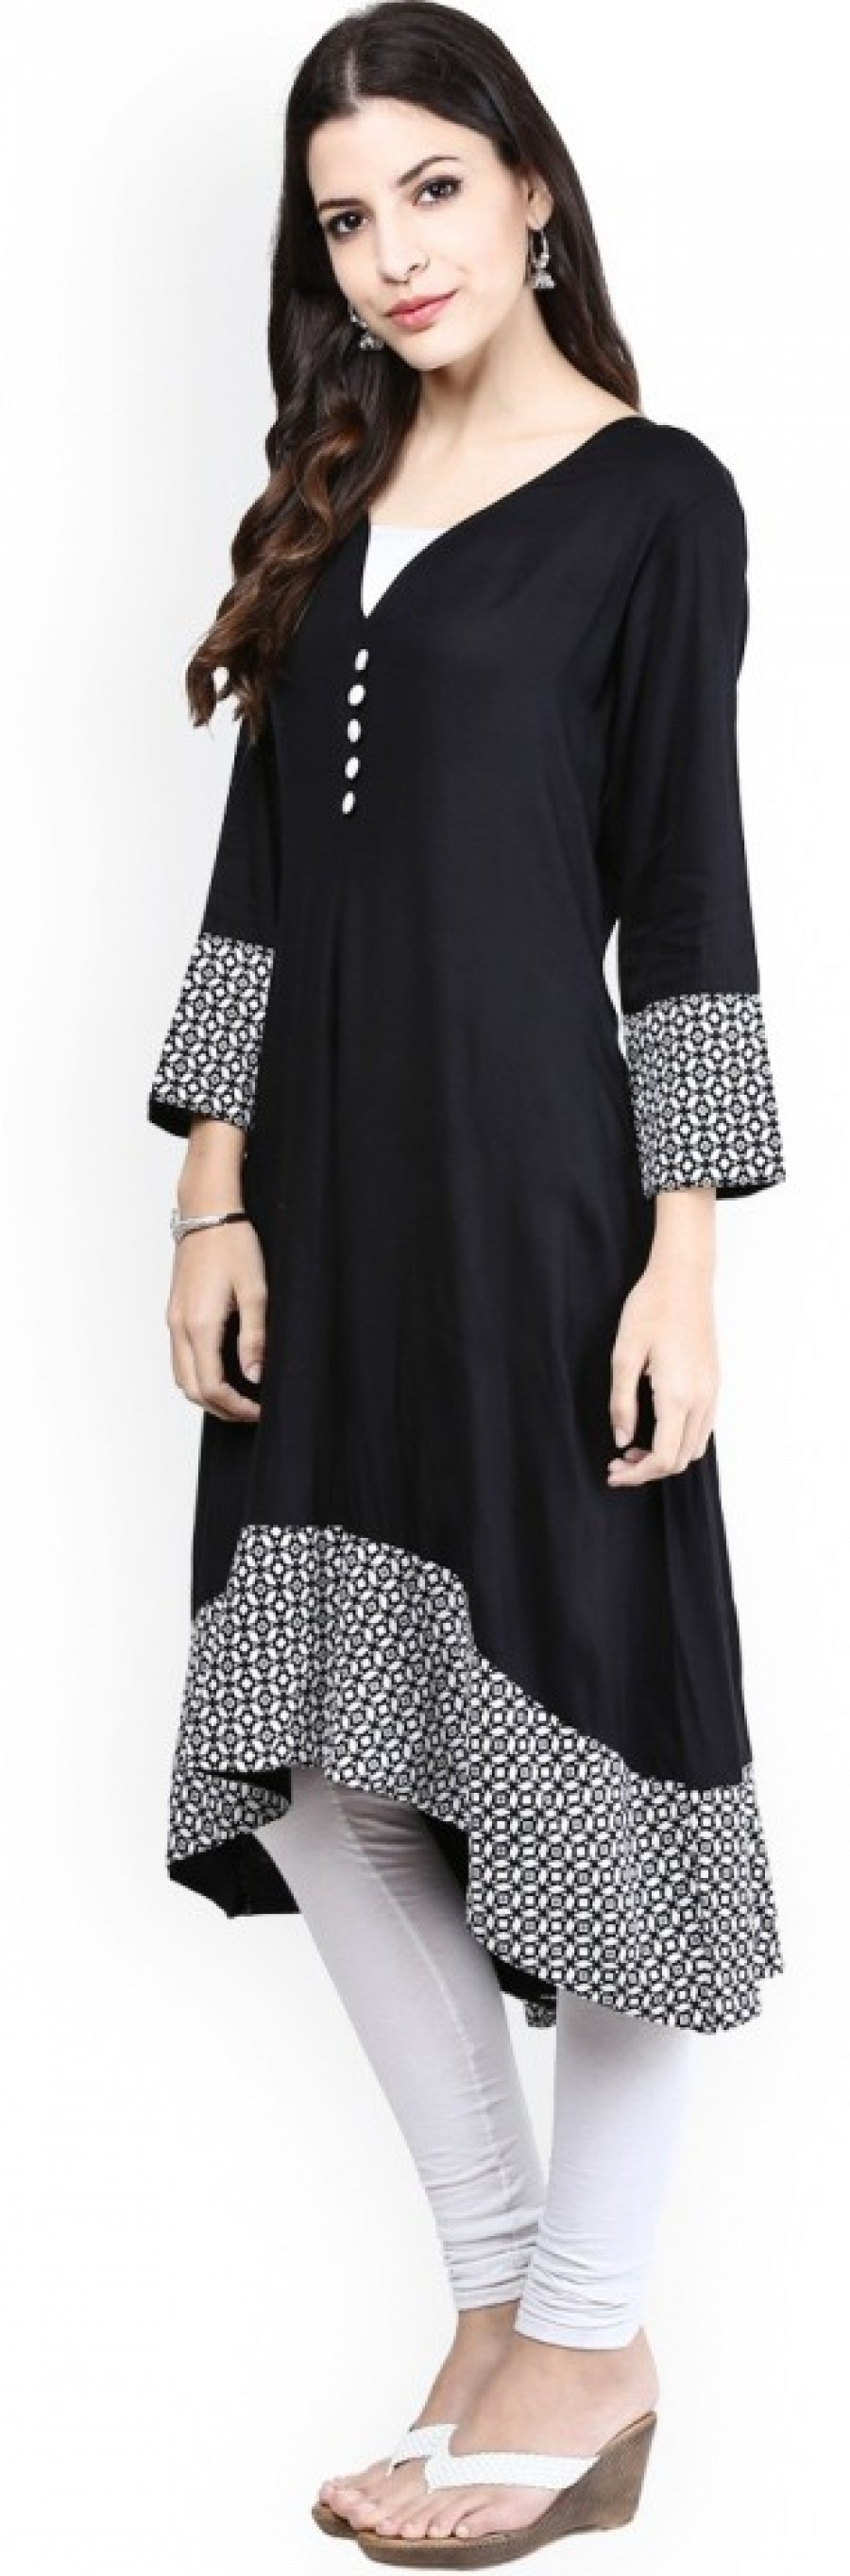 Buy Ethnic For You Casual, Party, Festive Self Design Women Kurti Online